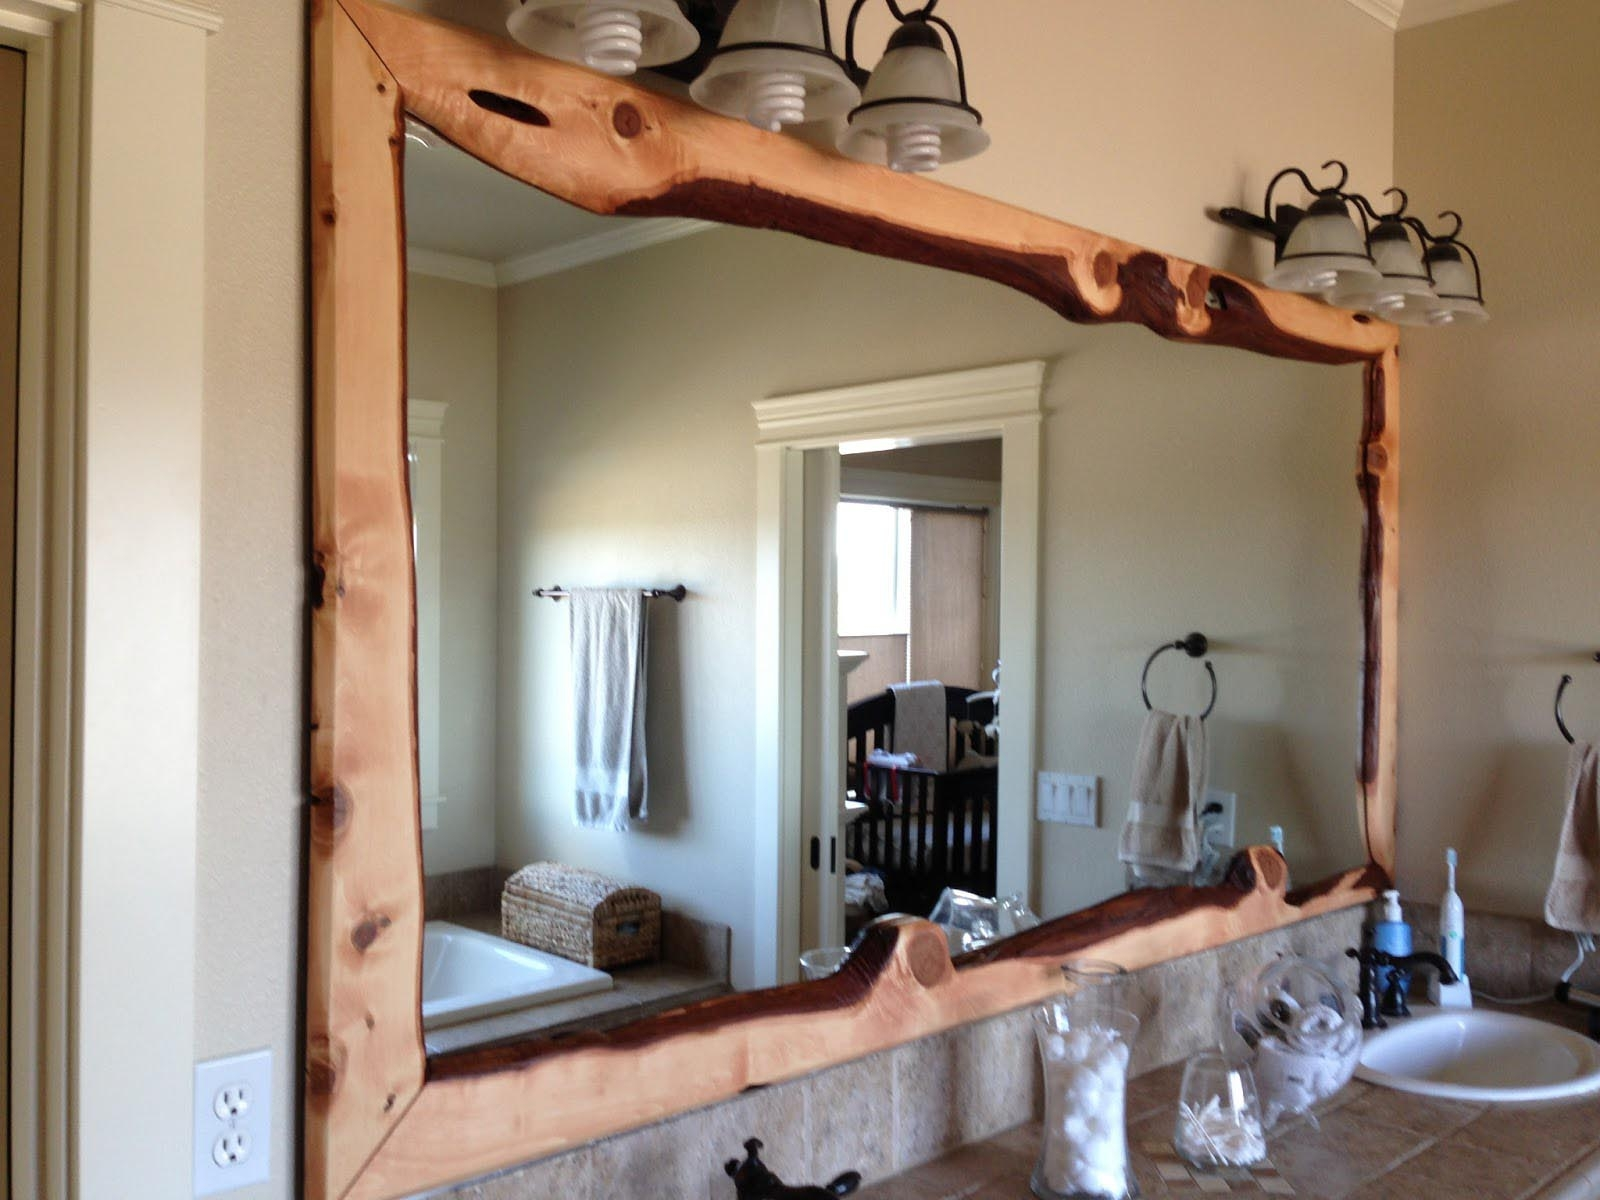 Large Bathroom Wall Mirror With Rustic Carbonized Pine Wood Frame Intended For Oak Framed Wall Mirrors (Image 4 of 15)